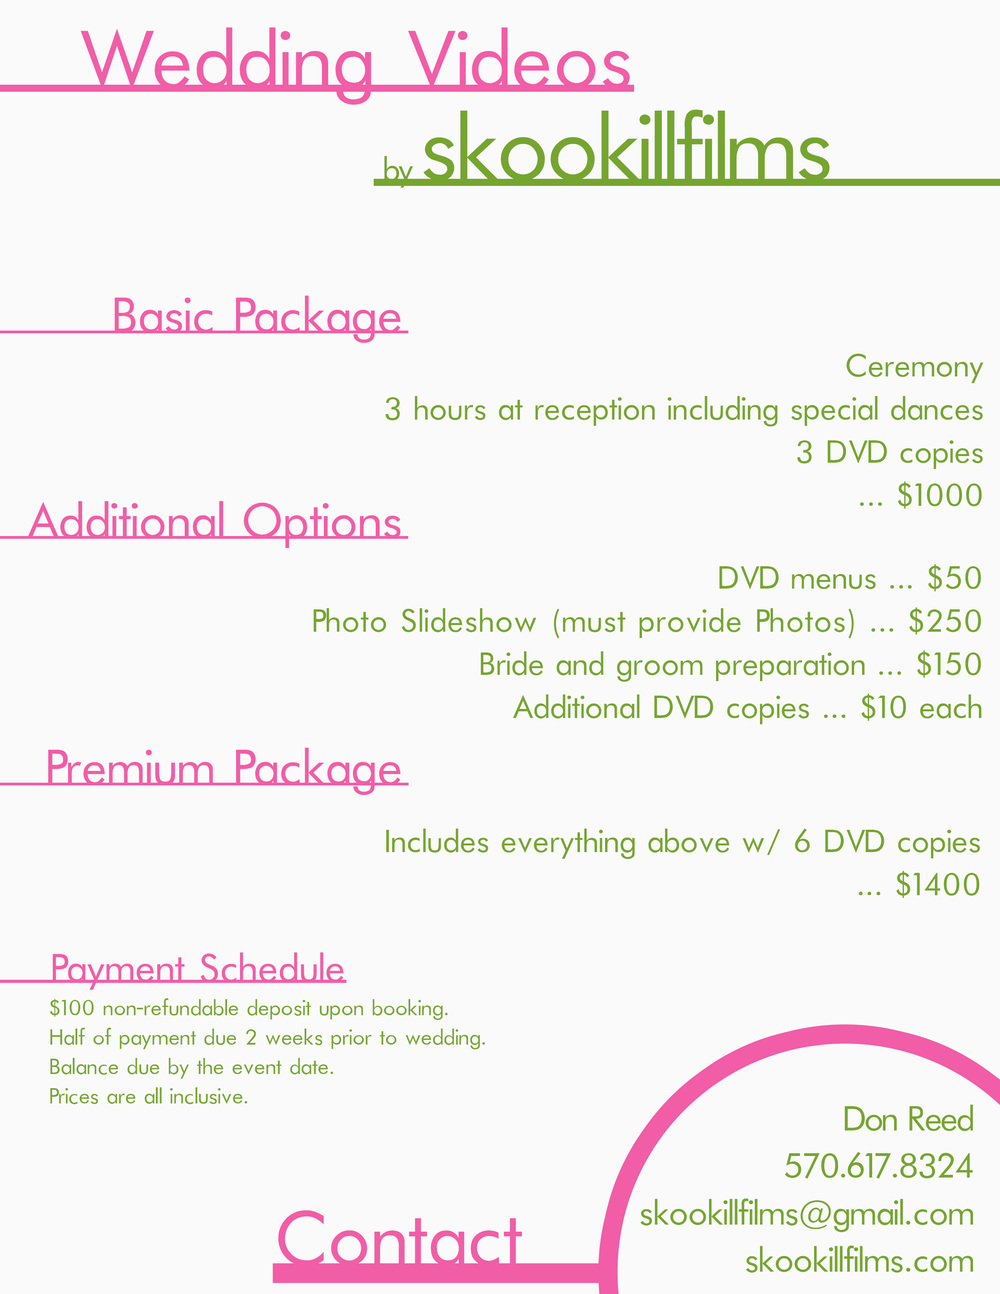 2015 skookillfilms wedding prices.jpg